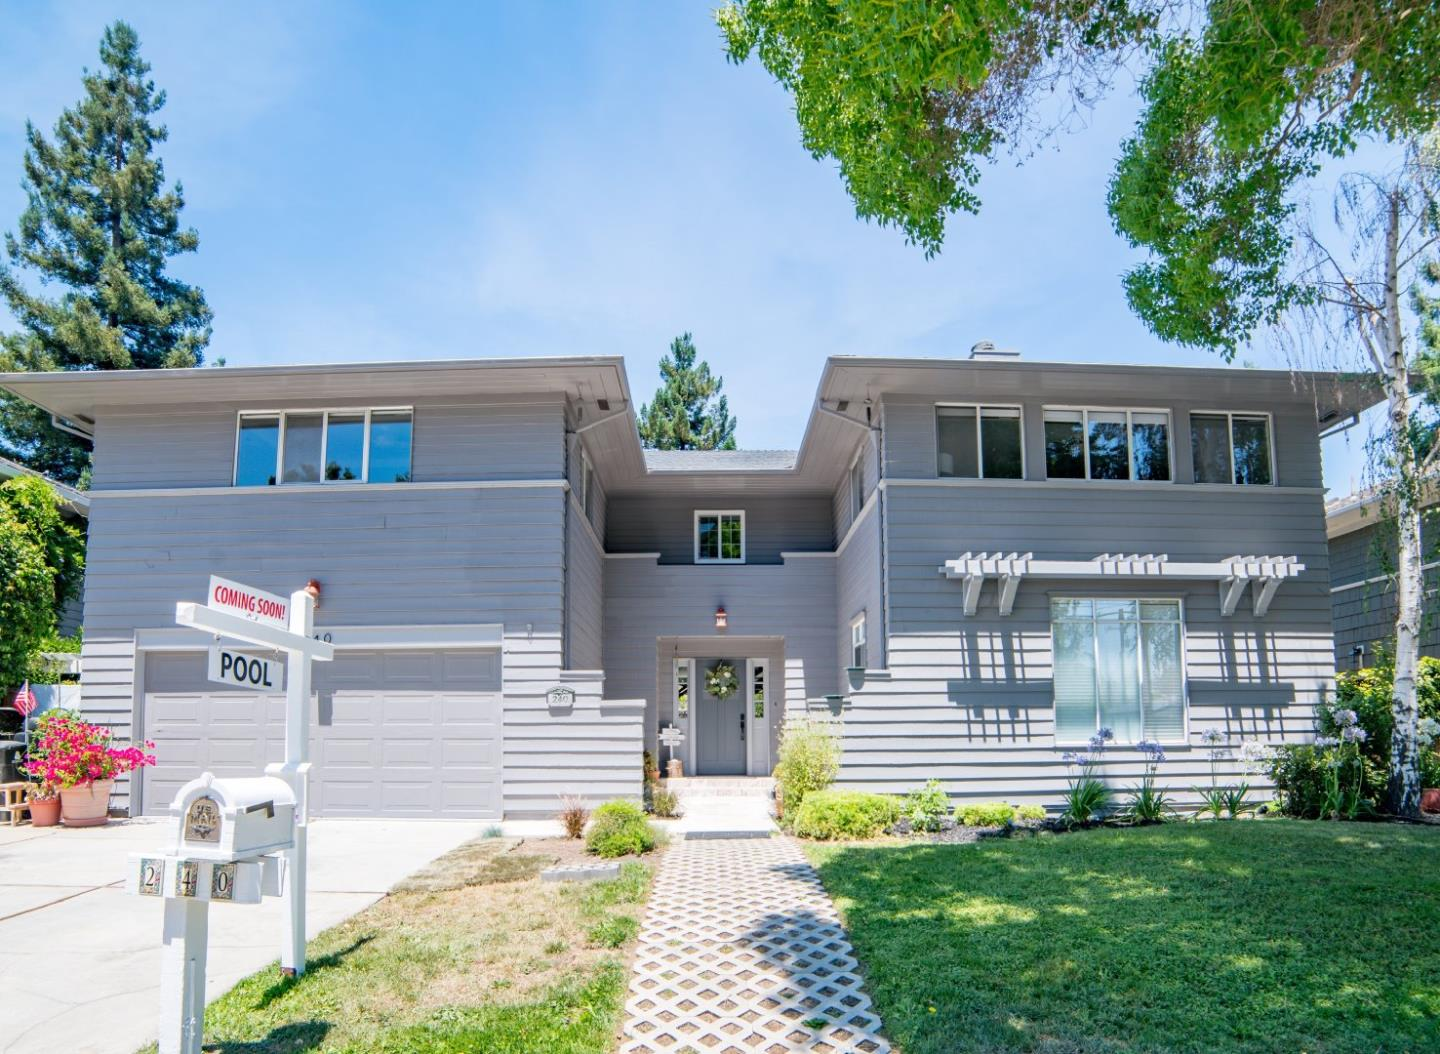 240 SLEEPER AVE, MOUNTAIN VIEW, CA 94040